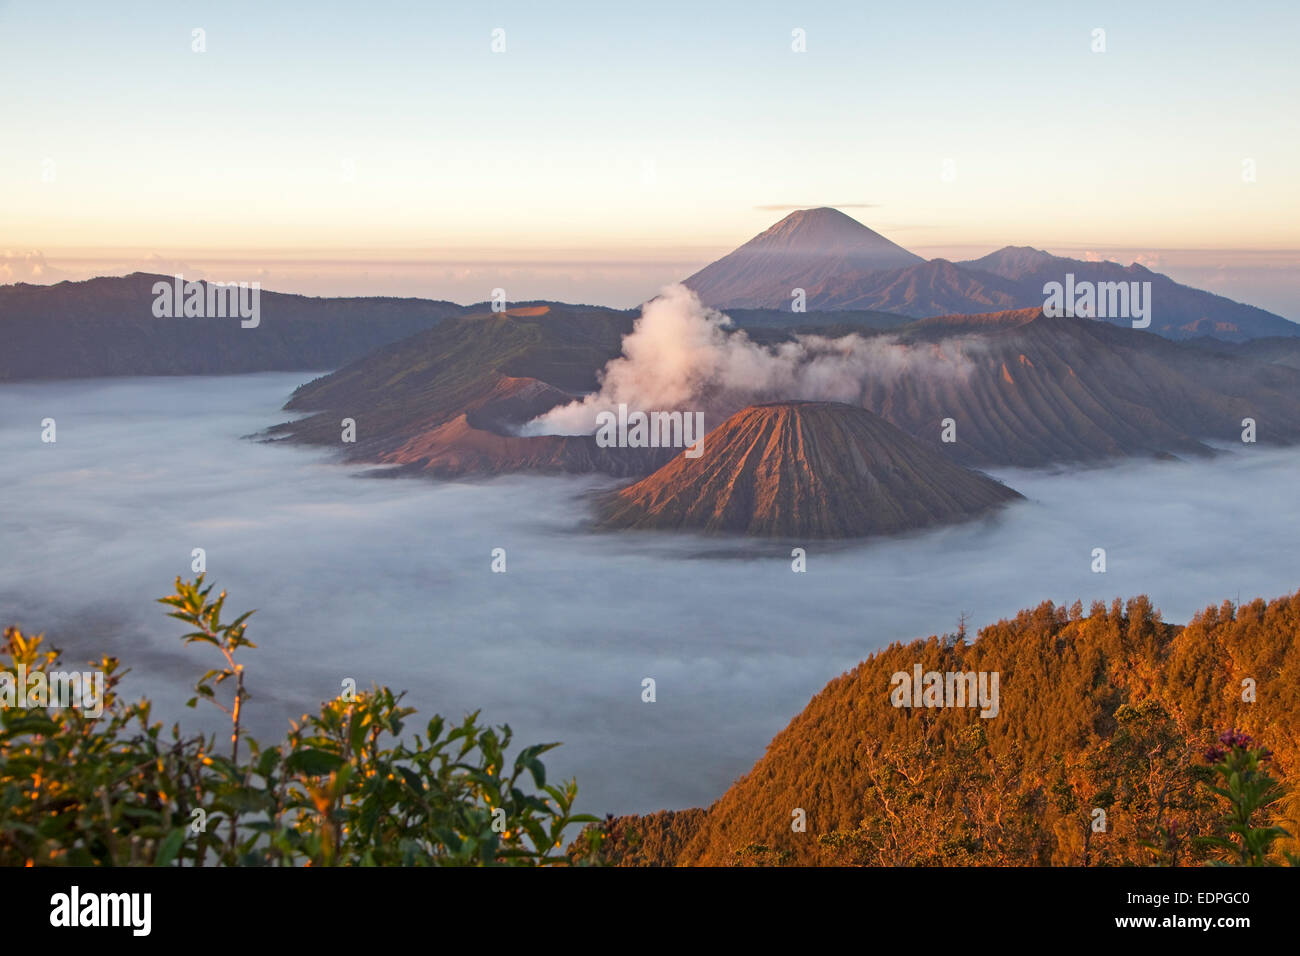 Sunrise over Mount Bromo / Gunung Bromo, active Indonasian volcano and part of the Tengger massif, East Java, Indonesia - Stock Image